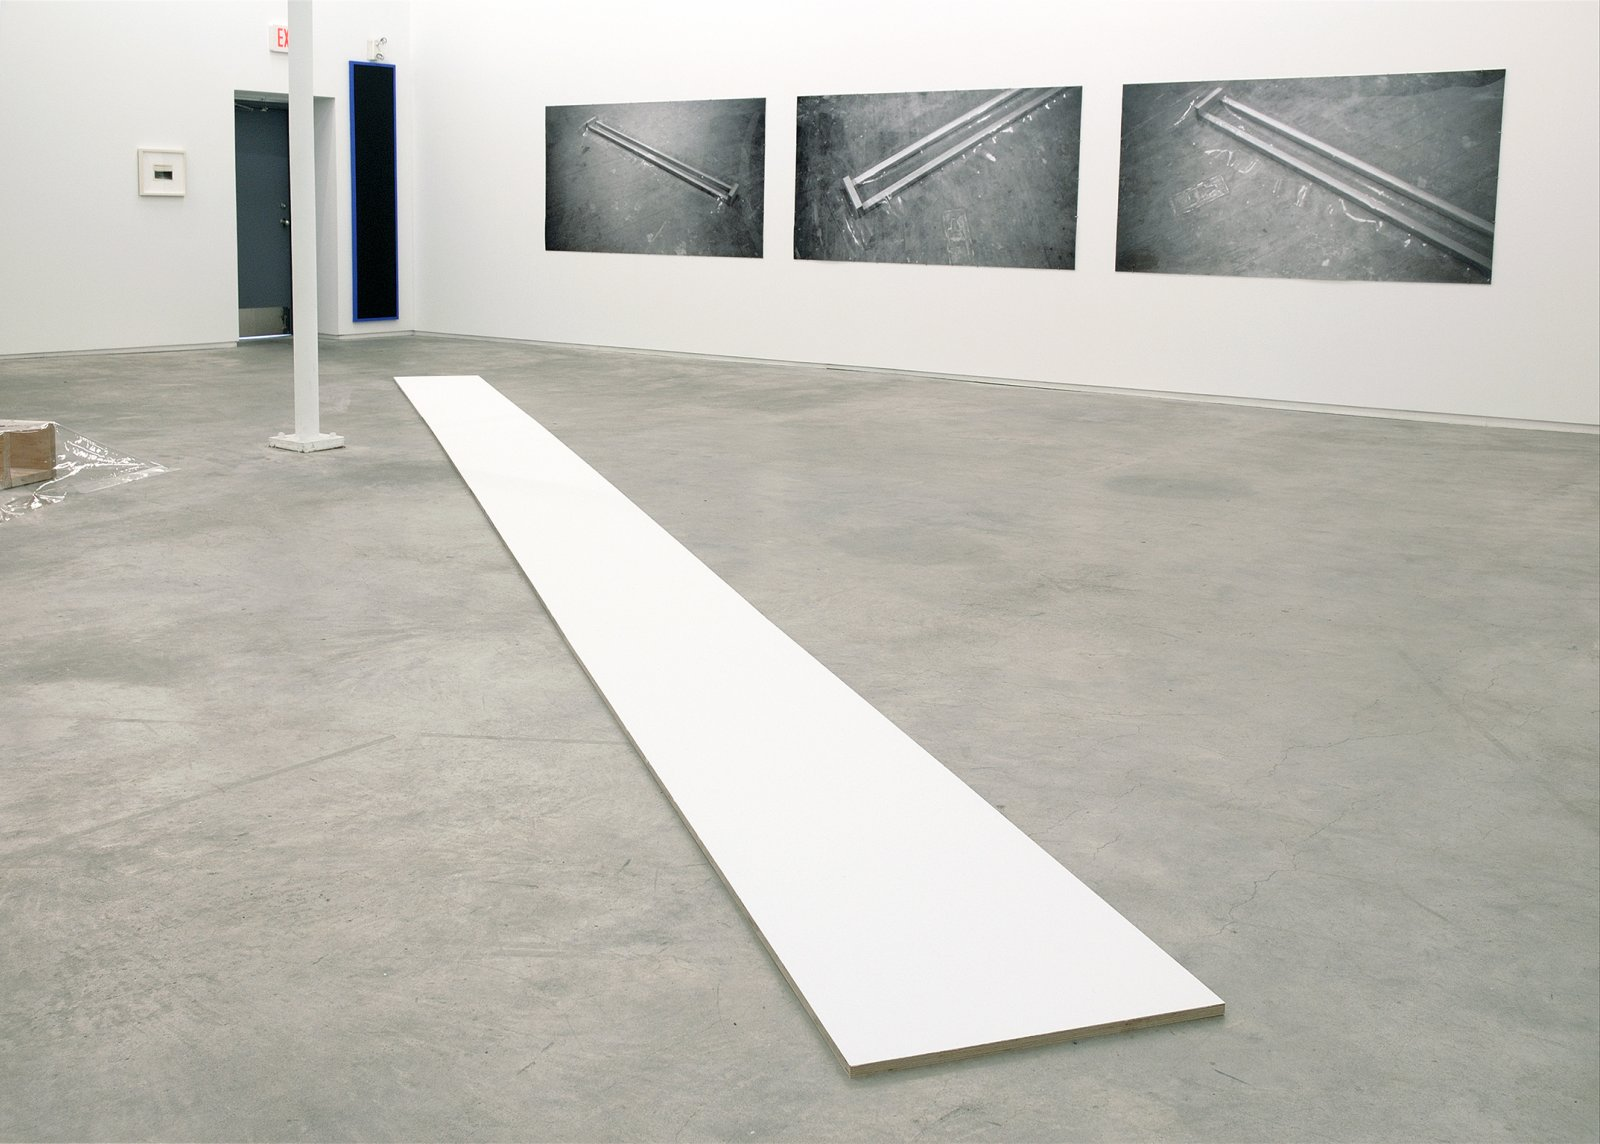 ​Ian Wallace, Untitled (White Line), 1969–2007, acrylic on plywood, 1 x 384 x 24 in. (1 x 975 x 61 cm) by Ian Wallace